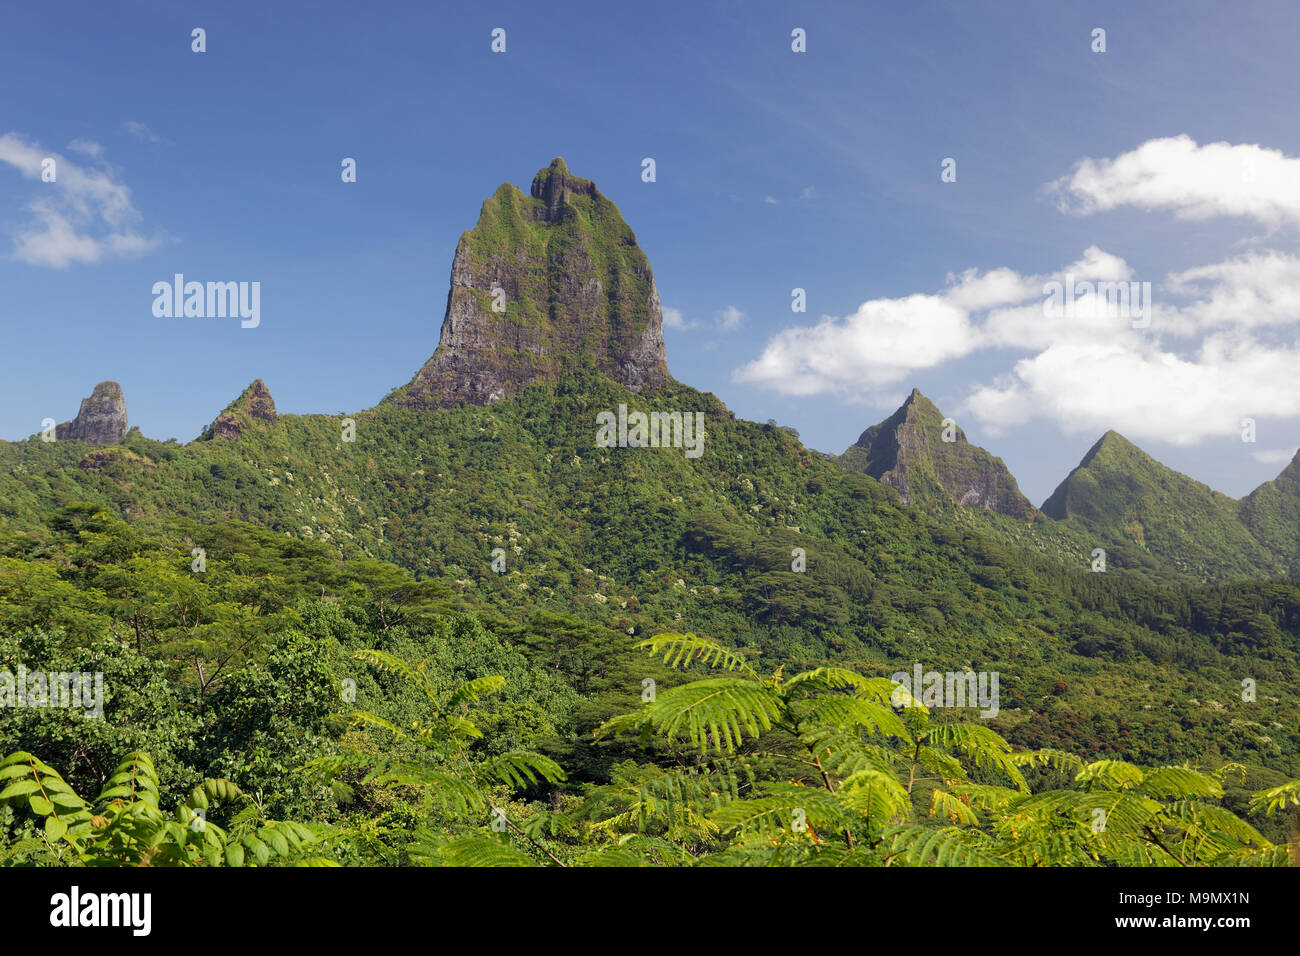 View from Belvedere vantage point, green mountain range with green vegetation and highest point Mont Tohiea, 1207 m, Moorea - Stock Image